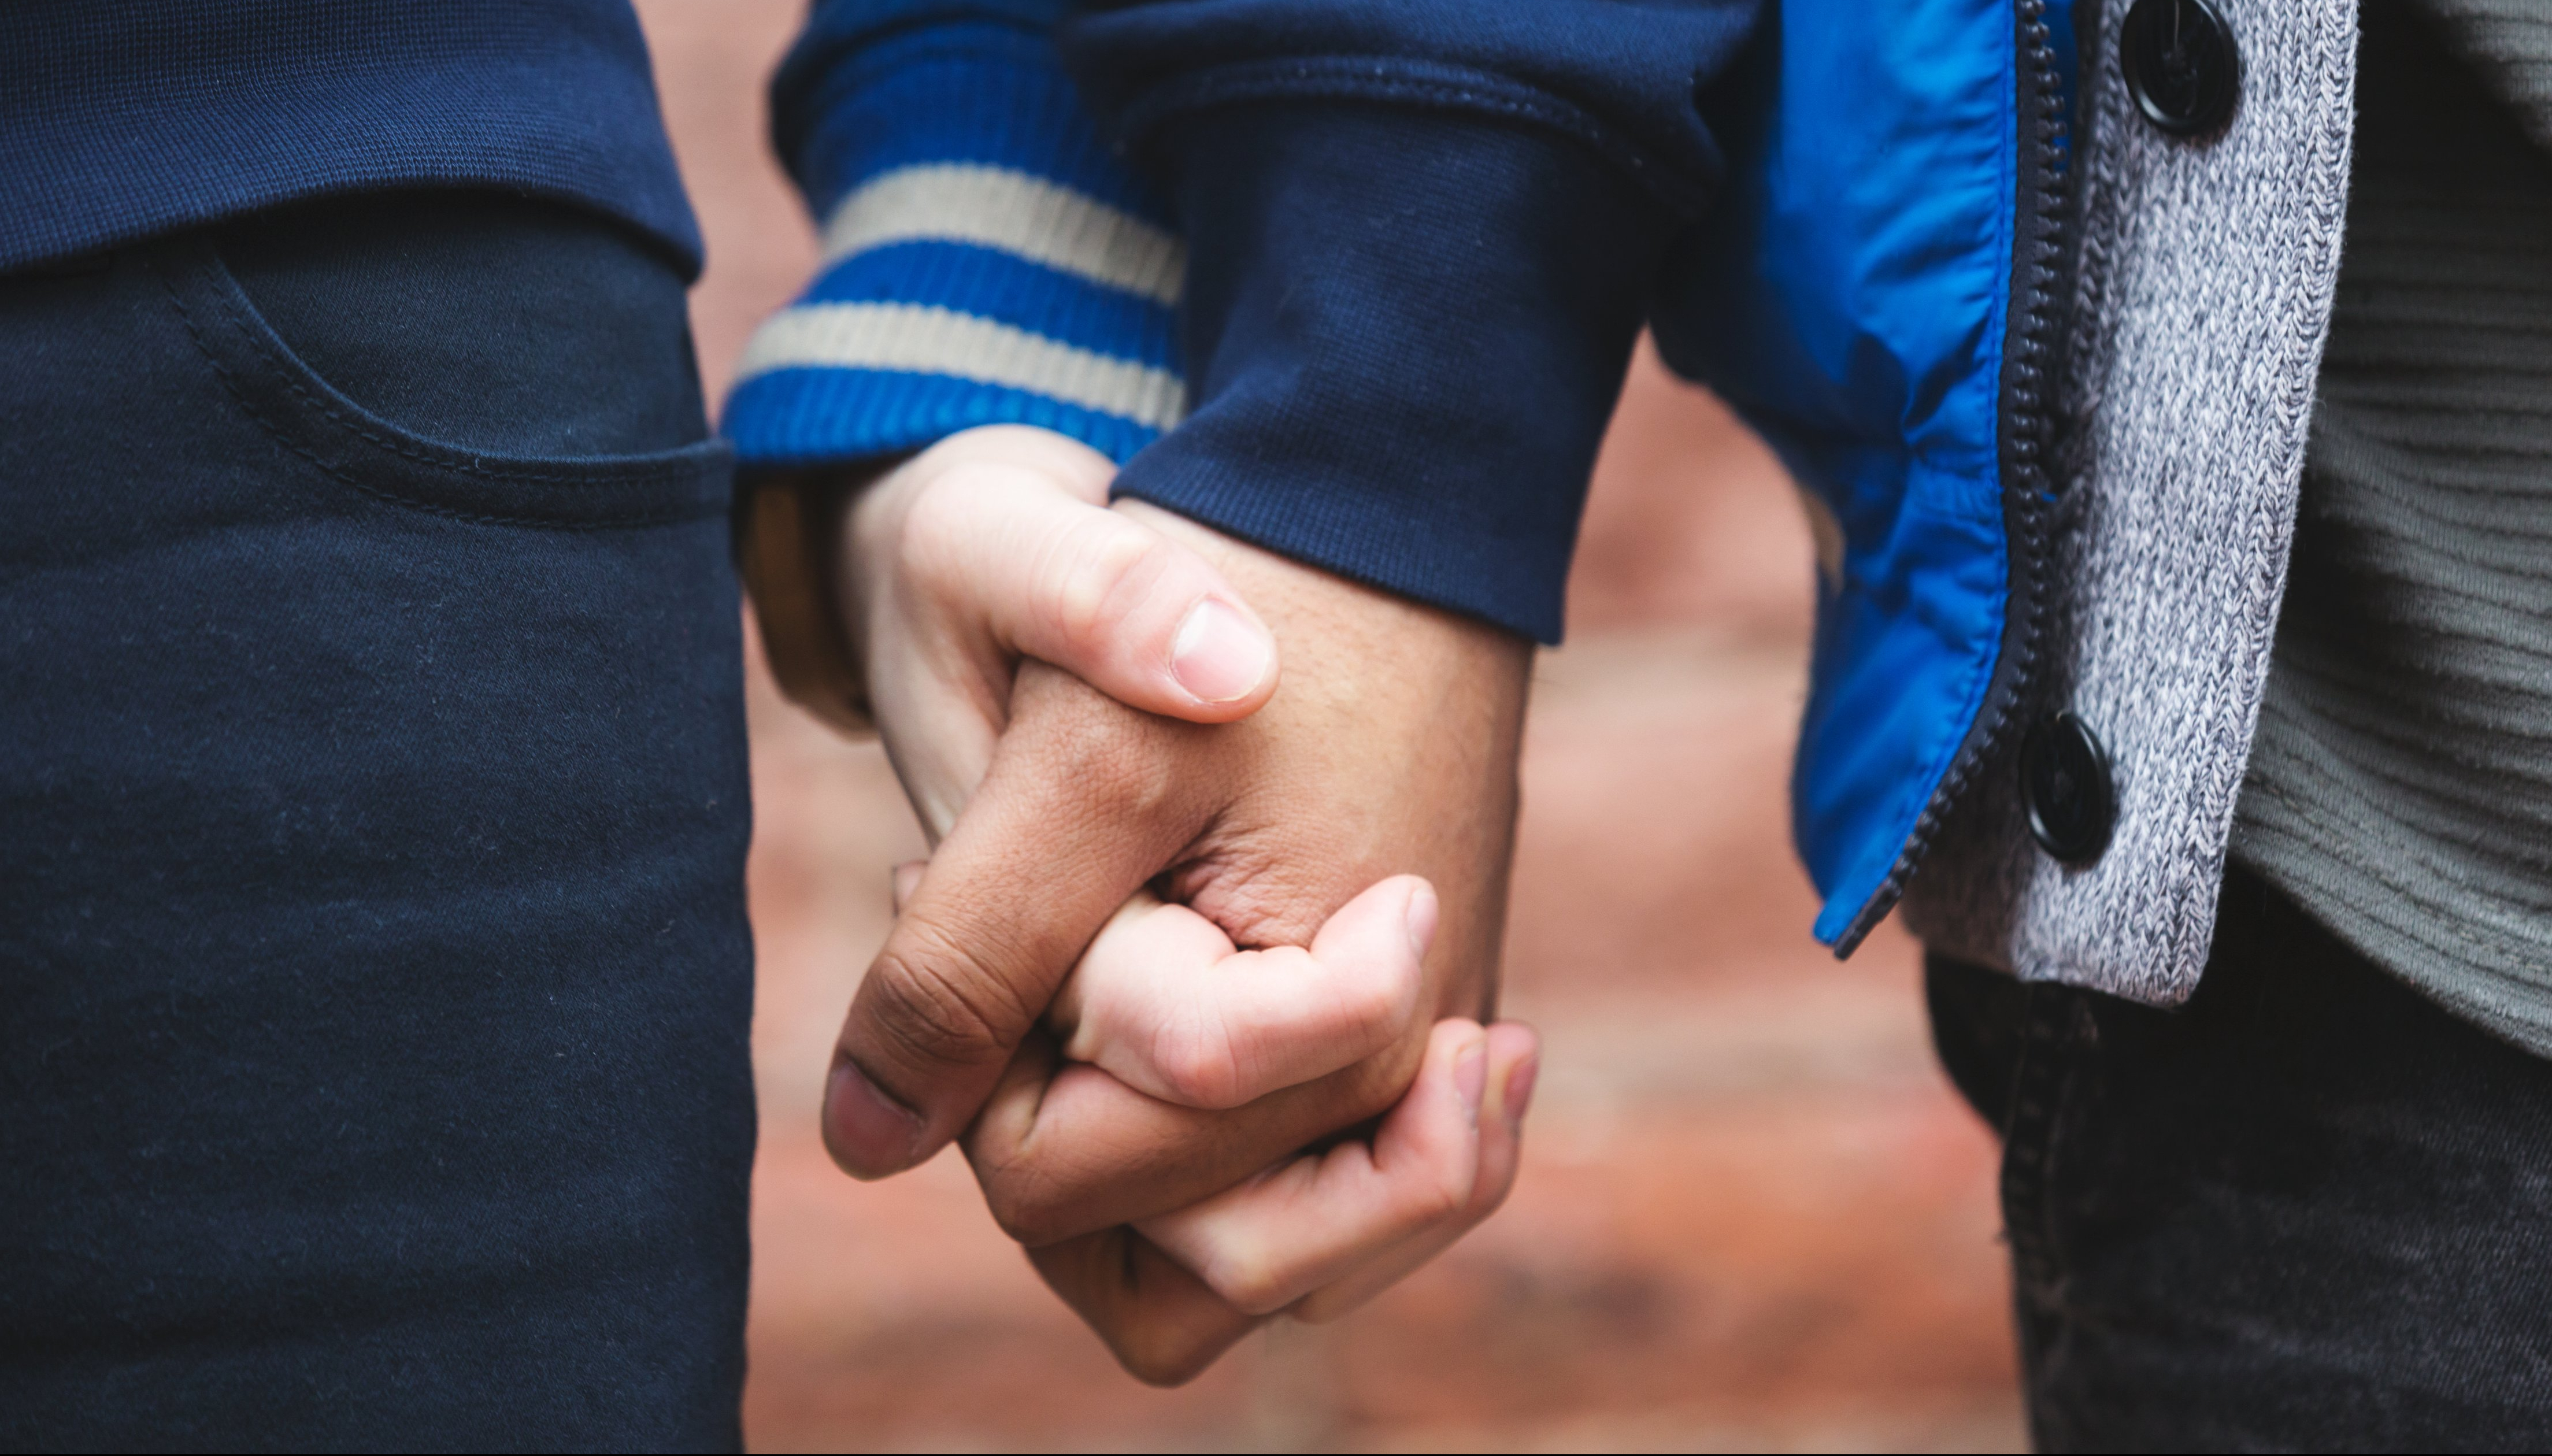 What Were They Thinking? Dating Experiment Goes Horribly Wrong for Handcuffed-Couple